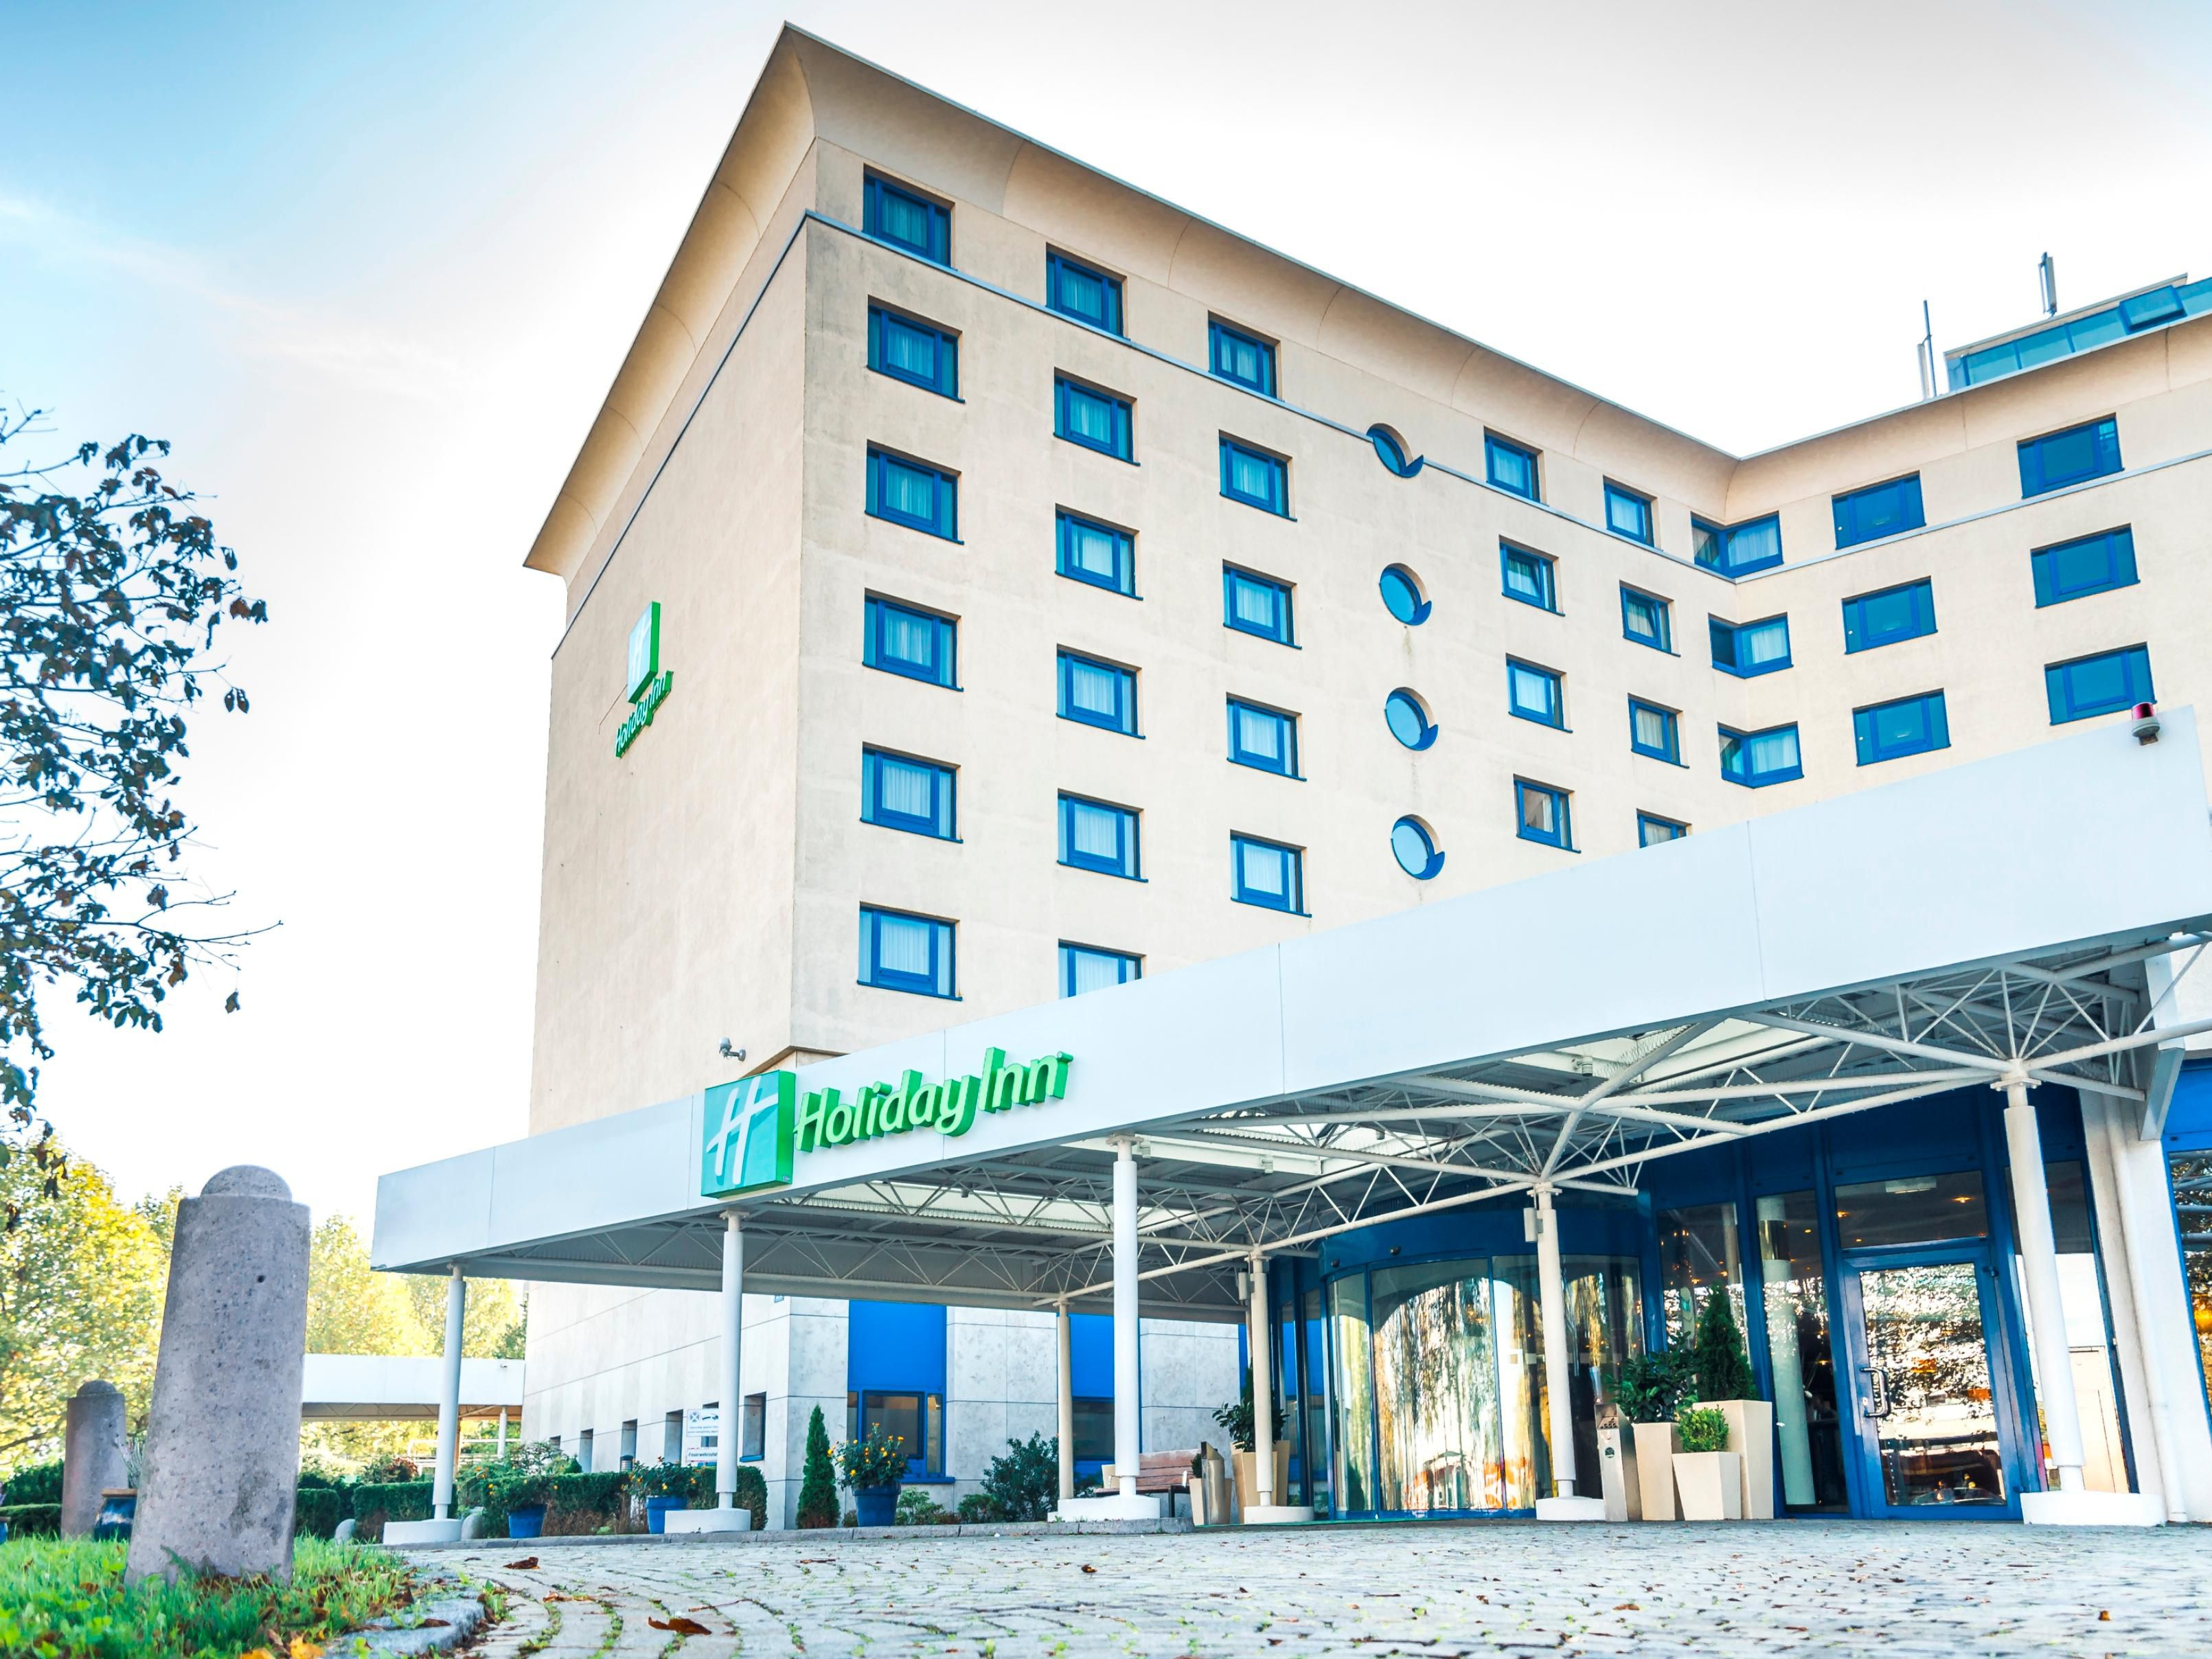 Welcome to the Holiday Inn Stuttgart